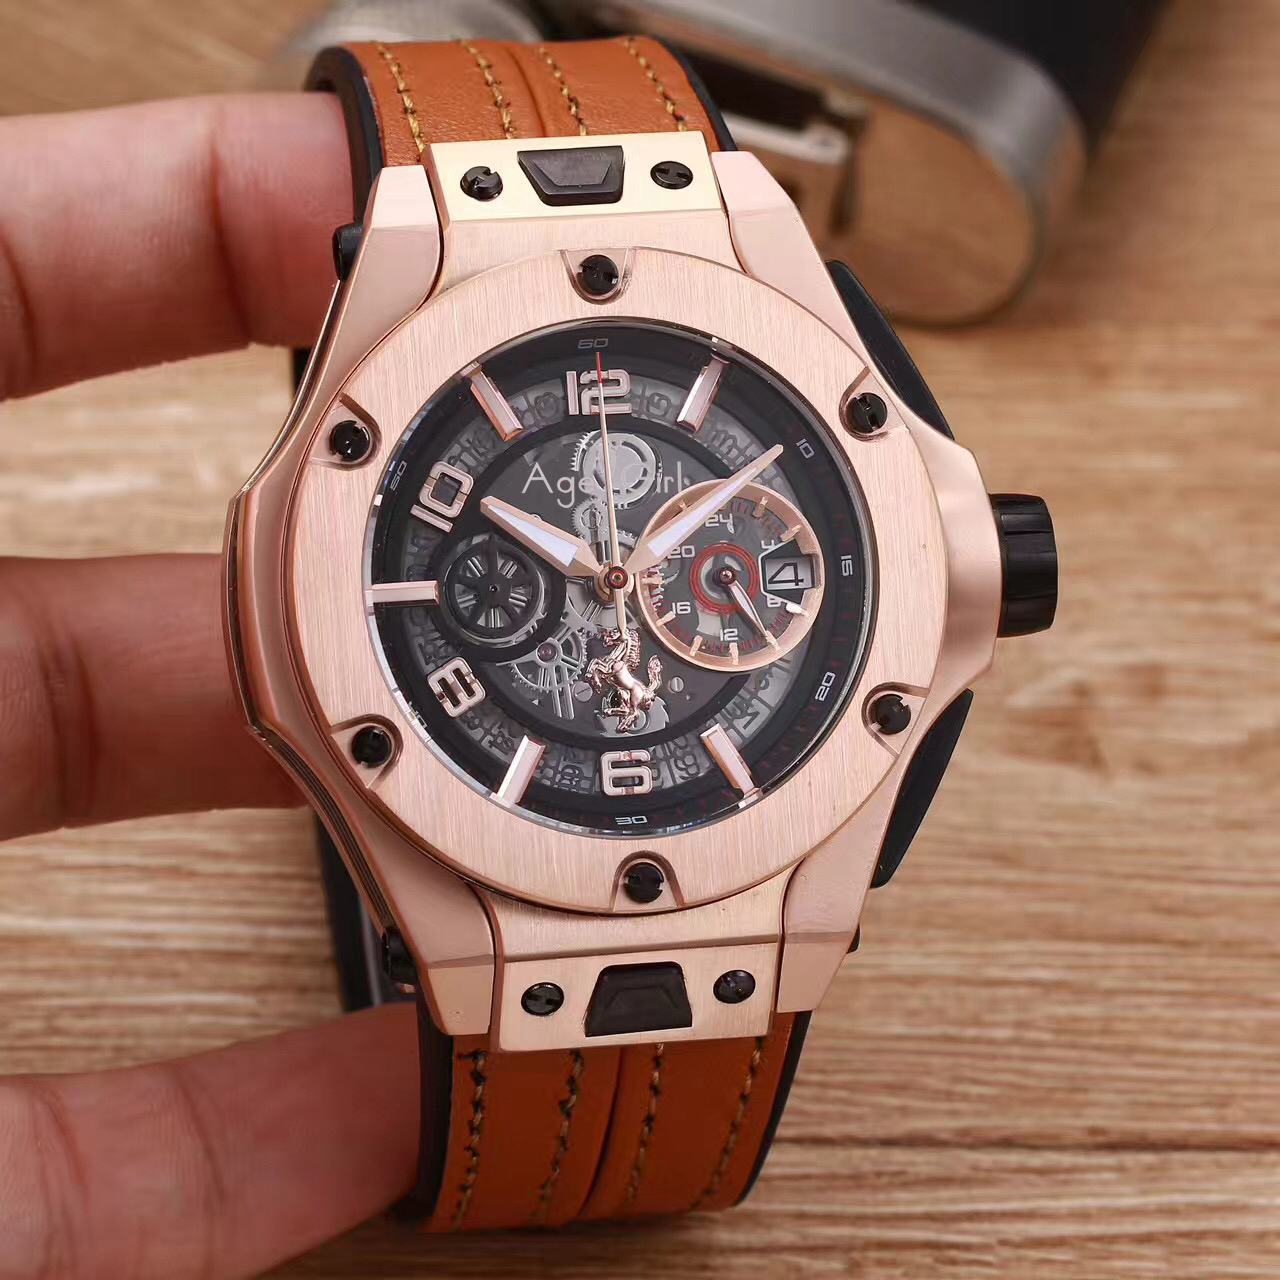 Luxury Brand New Men Rose Gold Brown Red Black Leather Automatic Mechanical Sapphire Date Watches Glass Back Waterproof AAA+Luxury Brand New Men Rose Gold Brown Red Black Leather Automatic Mechanical Sapphire Date Watches Glass Back Waterproof AAA+